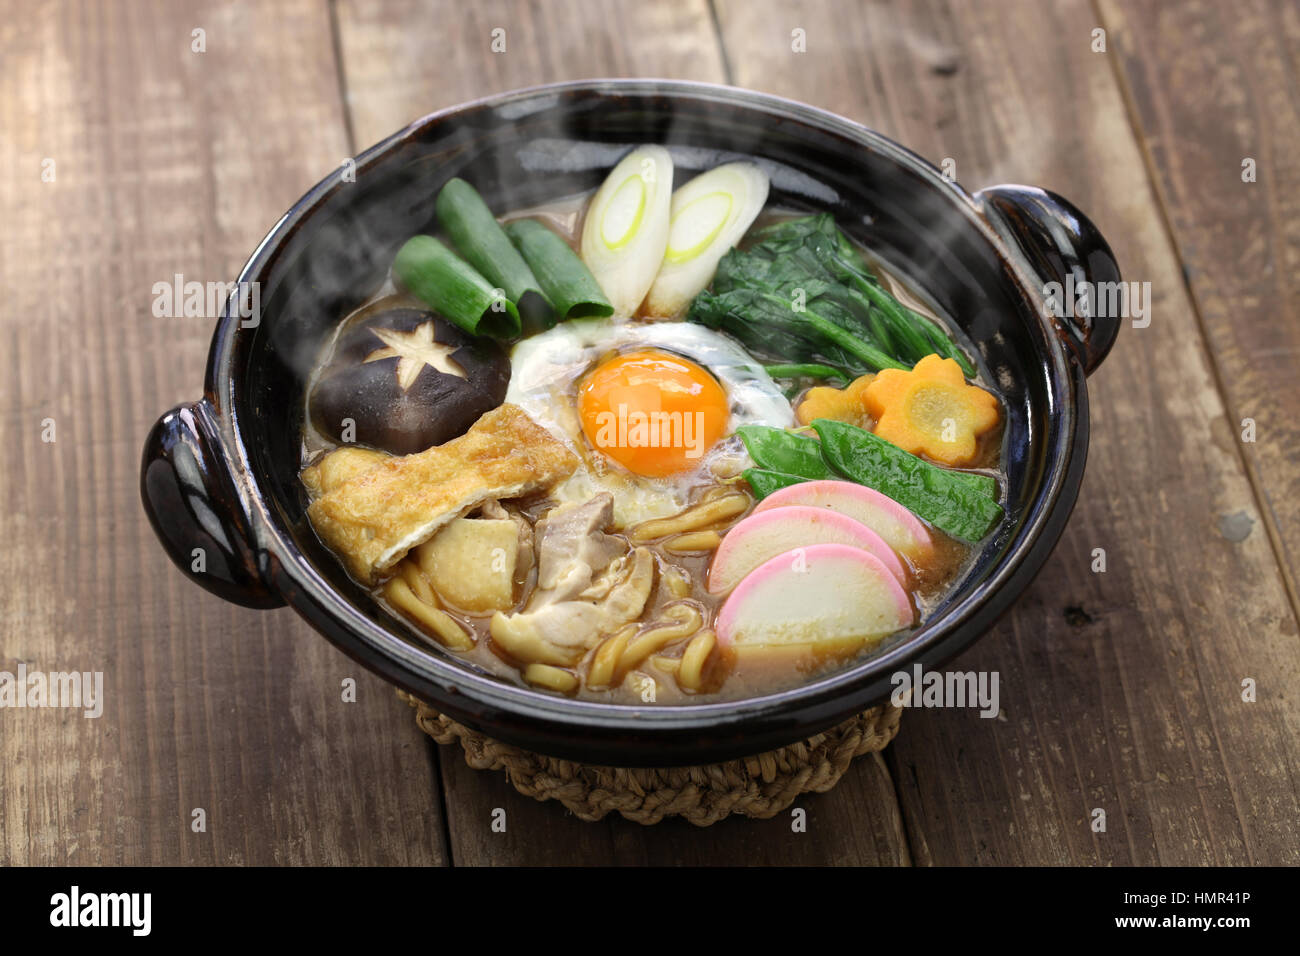 Le miso nikomi udon noodle soup, nourriture japonaise Photo Stock